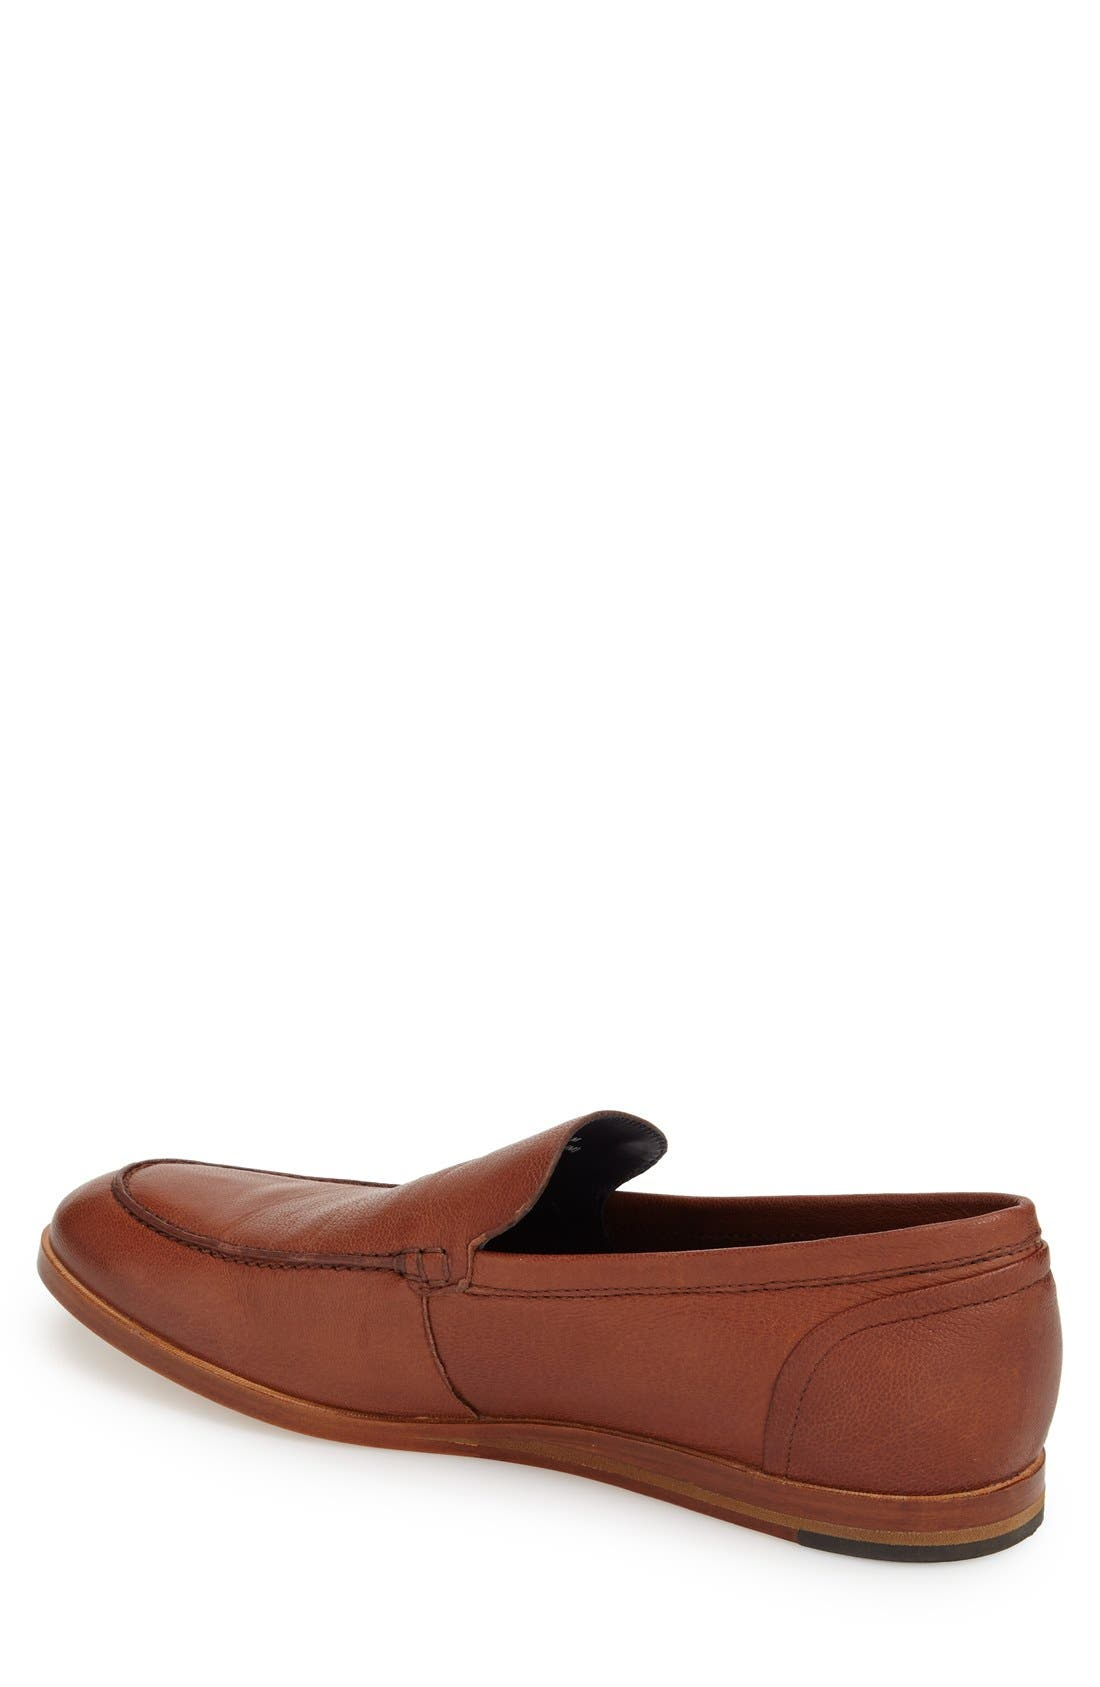 'Bedford' Loafer,                             Alternate thumbnail 2, color,                             Sequoia Brown